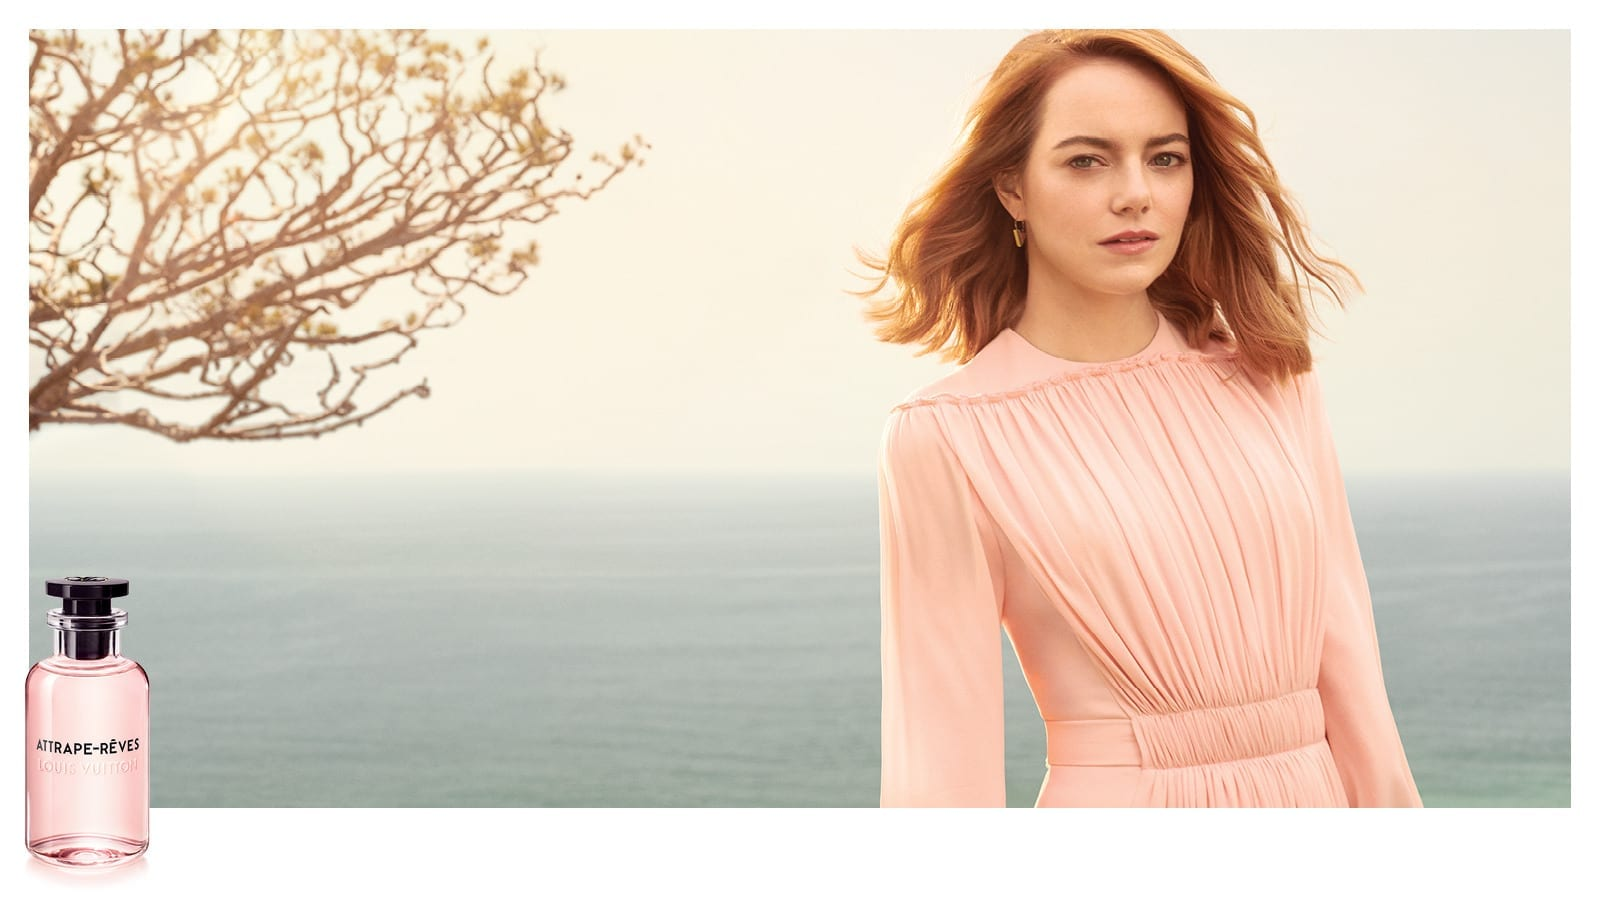 Les Parfums Louis Vuitton, the new campaign starring Emma Stone